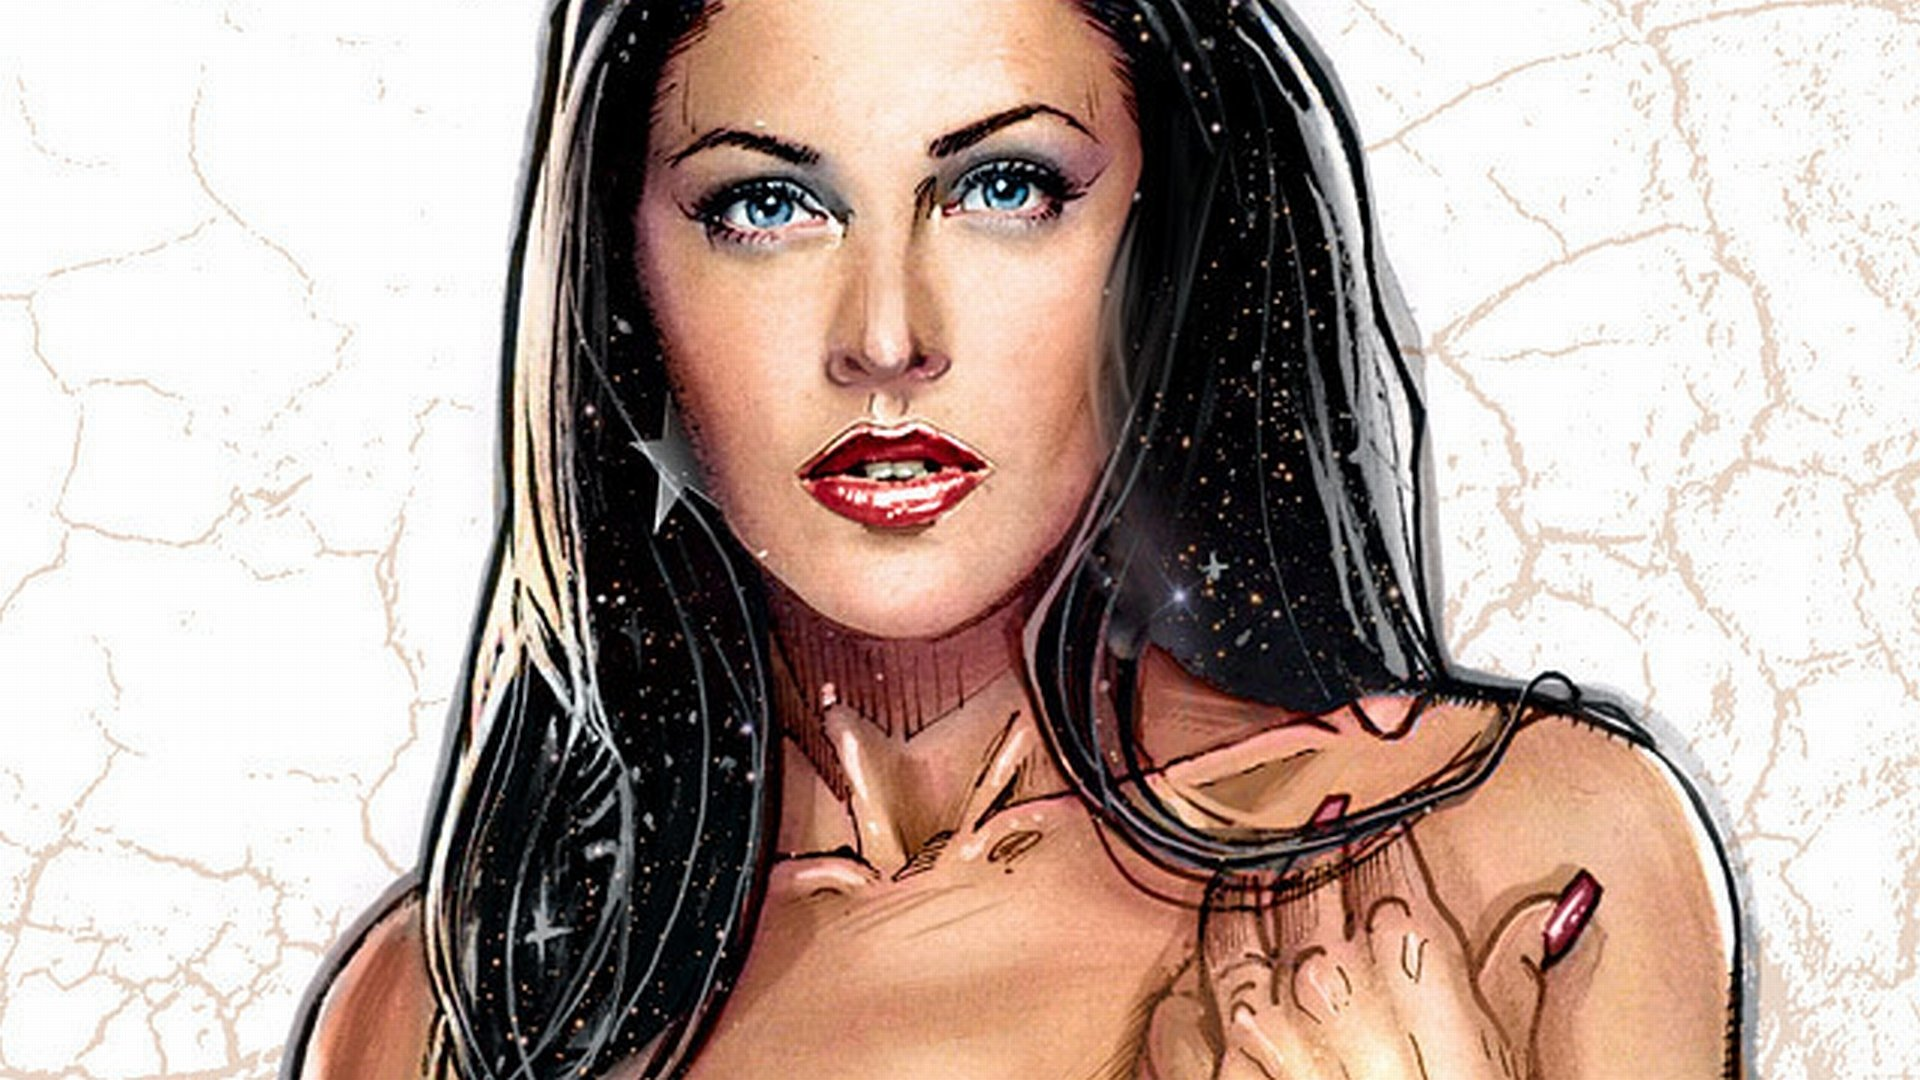 Wallpapers ID:160911